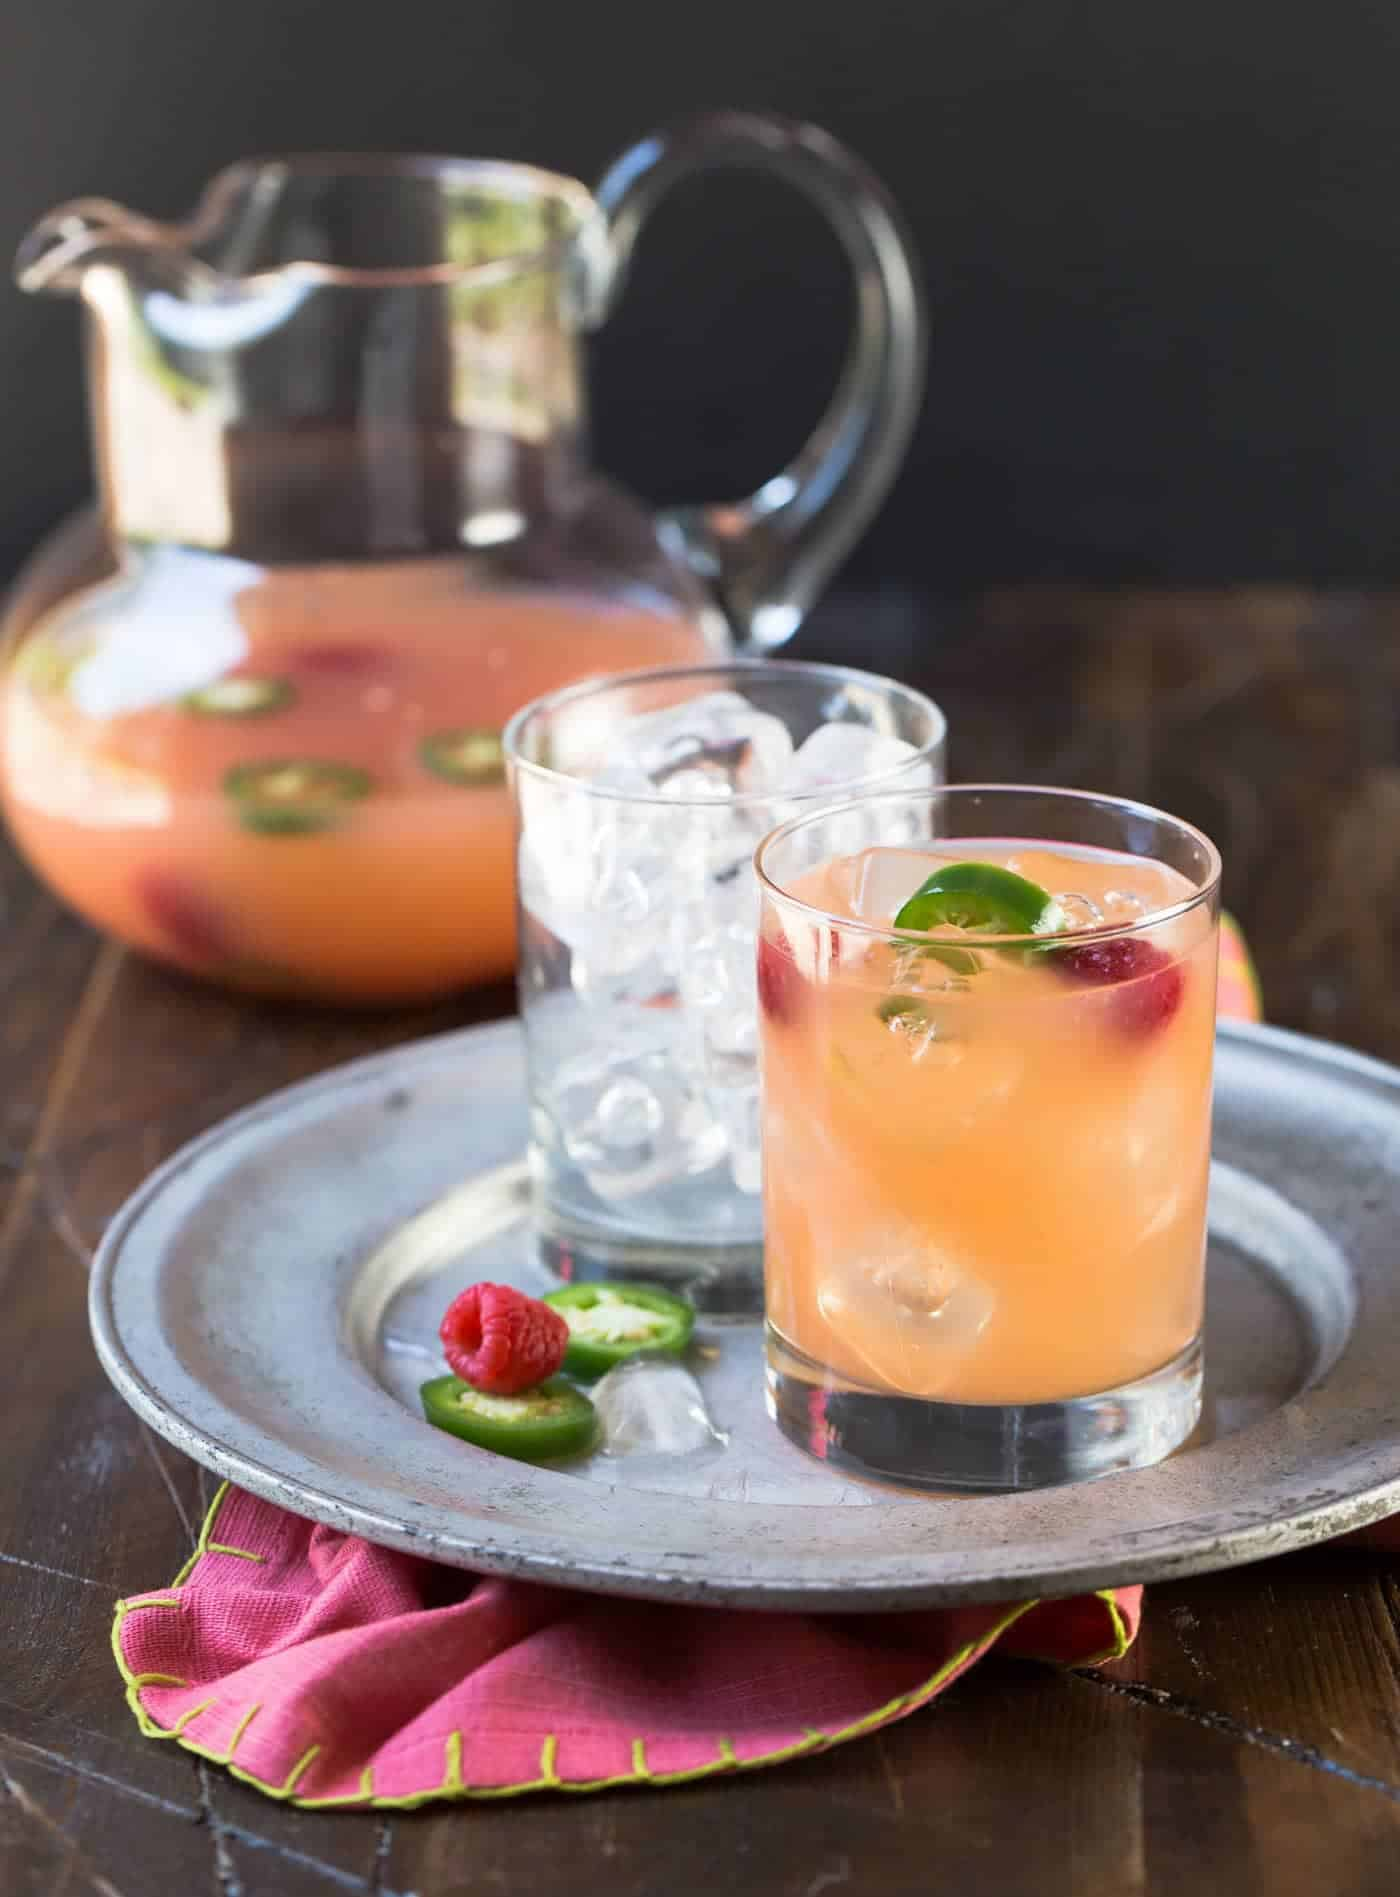 Love tequila? Then you're going to flip for these Raspberry Palomas, a refreshing tequila cocktail made with grapefruit juice, sweet raspberries and spicy jalapenos.